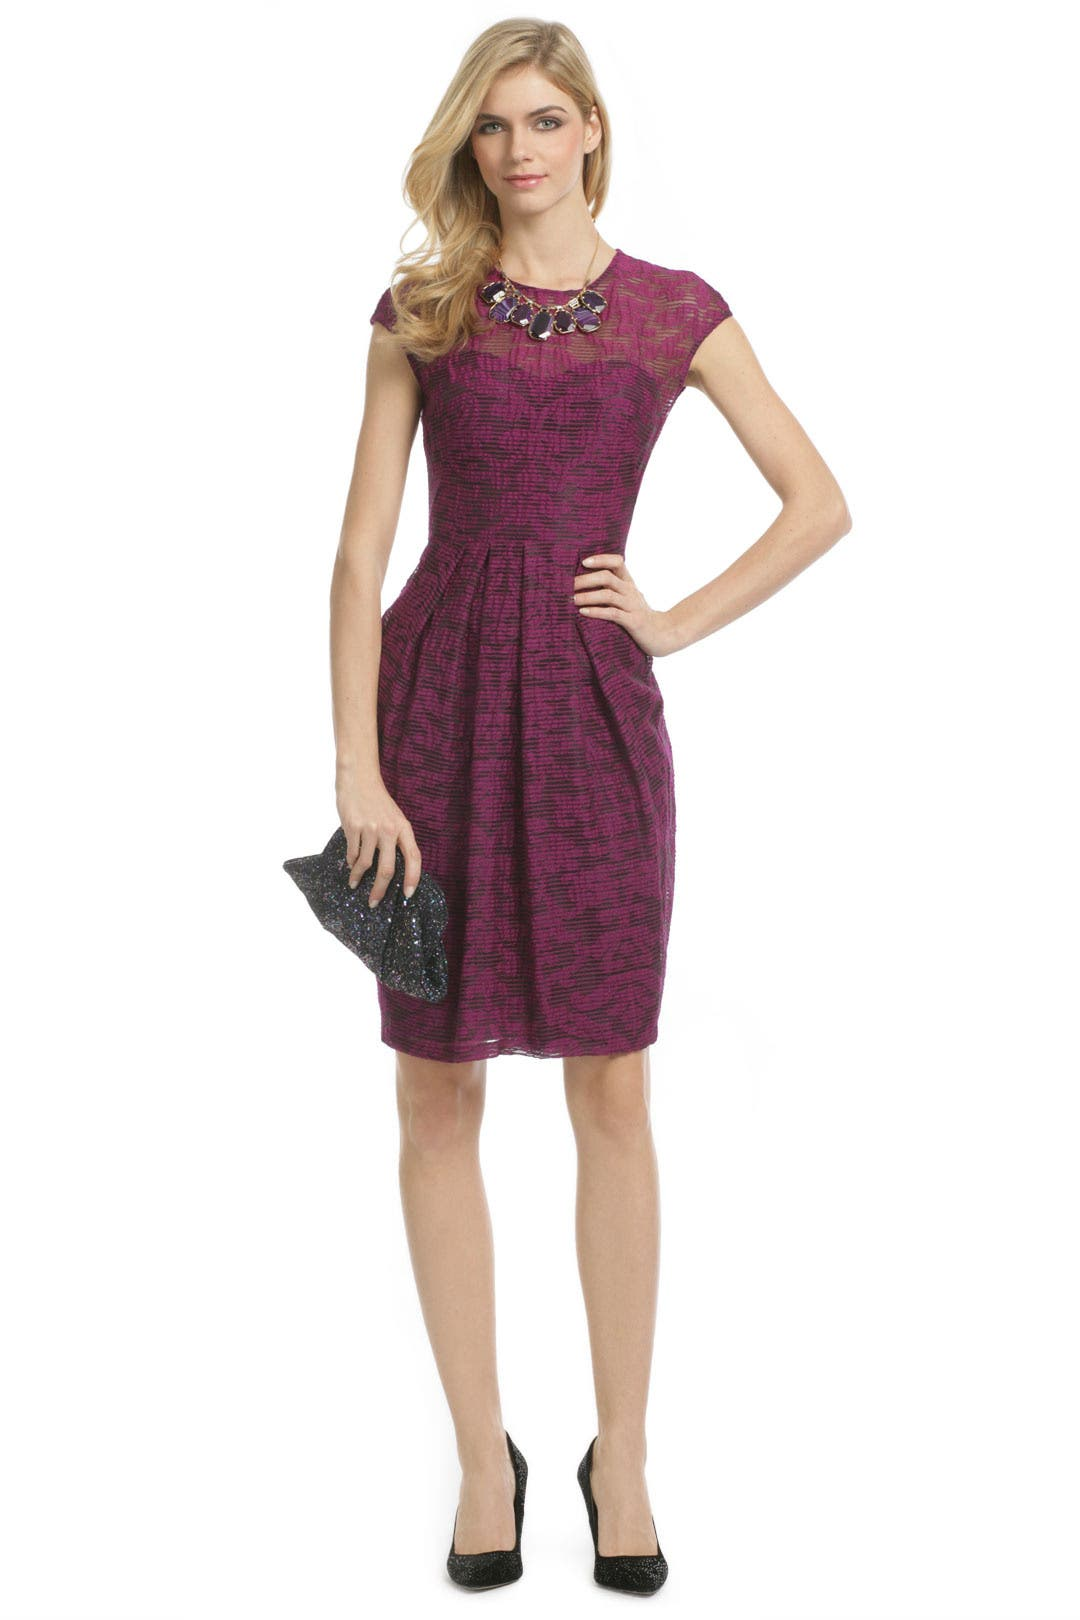 Fleur de Lis Dress by Lela Rose